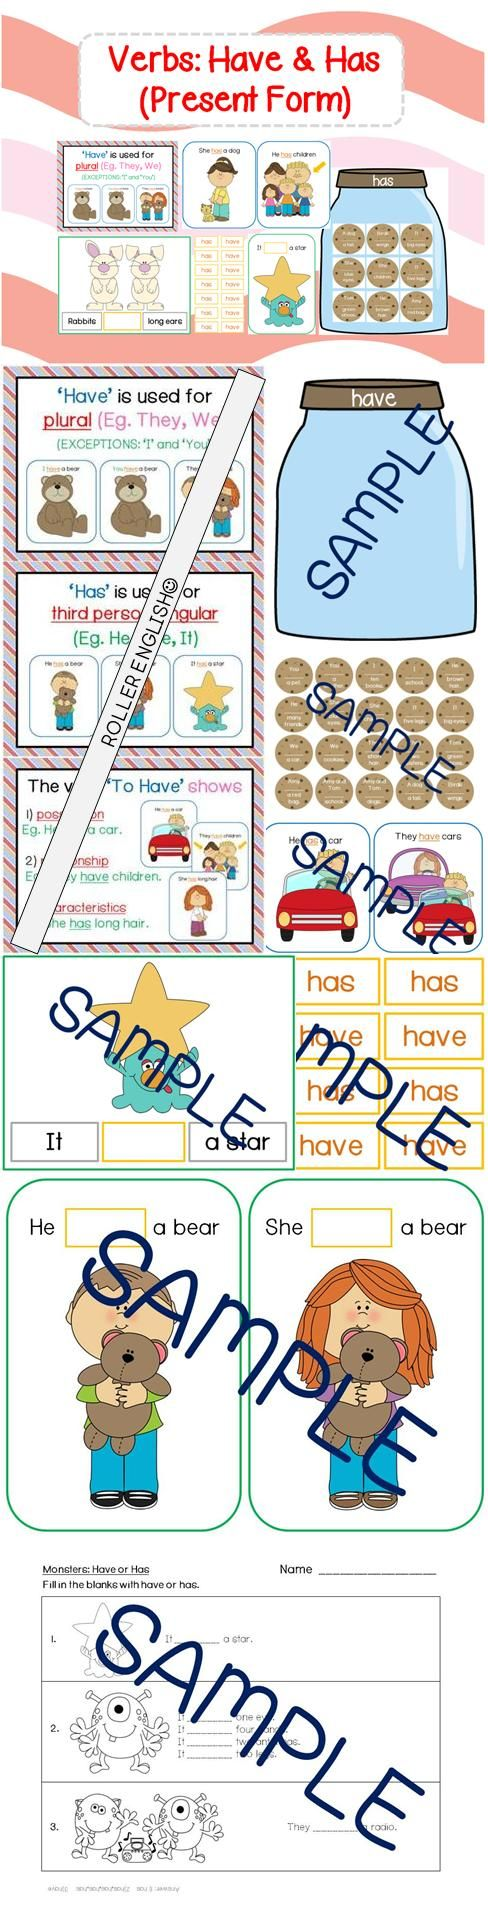 """$ This package teaches the present forms of 'have' for the subject pronouns (ie. He, She, It, They) and nouns (names: Ann, Tom; objects: cookies, jar; animals: rabbit).   Students would understand rules related to using 'have' and 'has'. They would learn to form simple three-word sentences, such as """"They have bears"""" and """"It has four hands""""."""